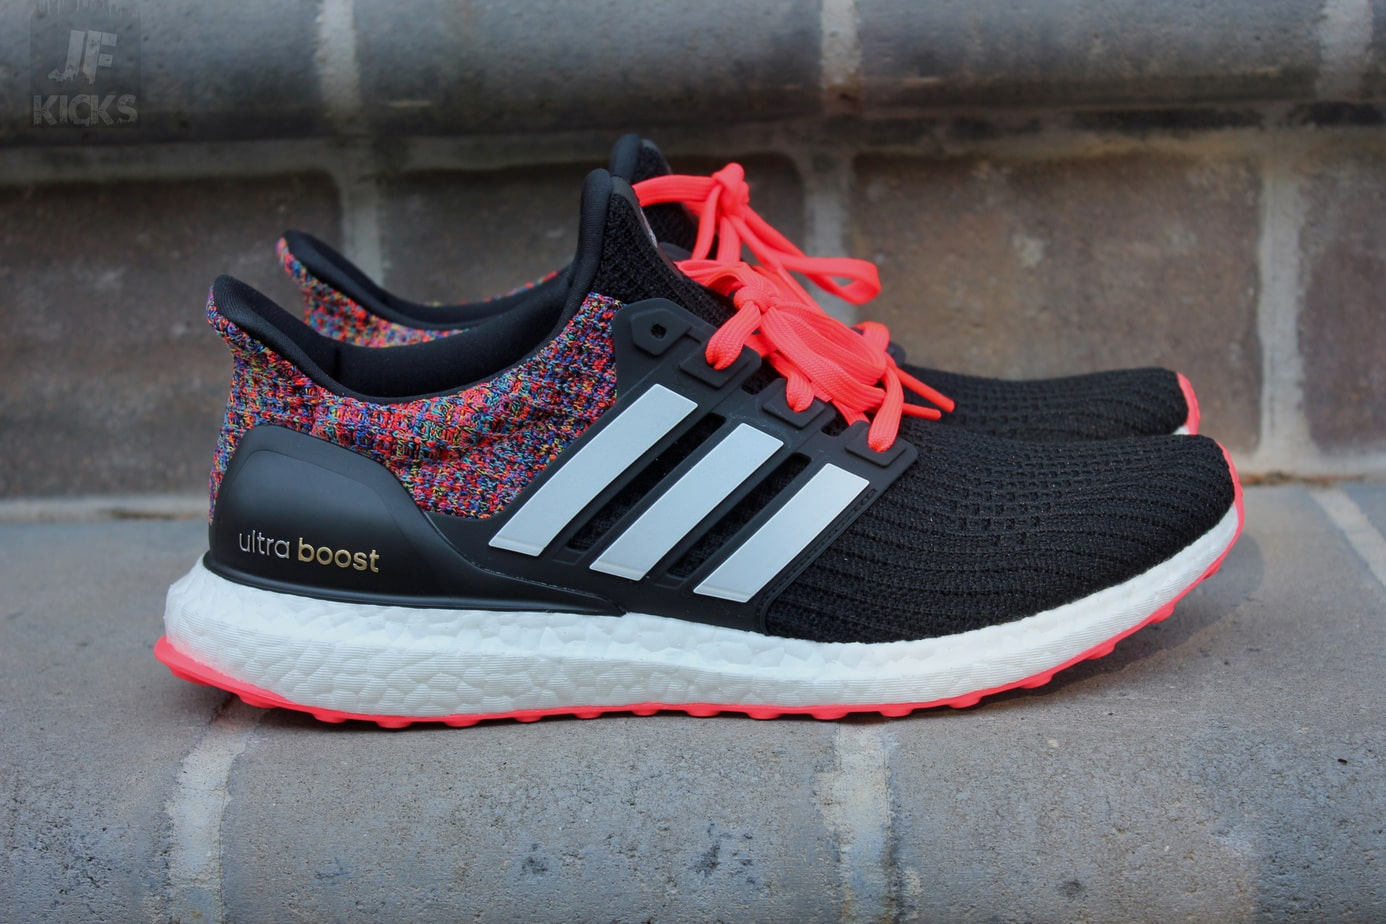 b478b16c915 ... miadidas Ultra Boost won t be around forever. Head over to the adidas  website to start customizing now